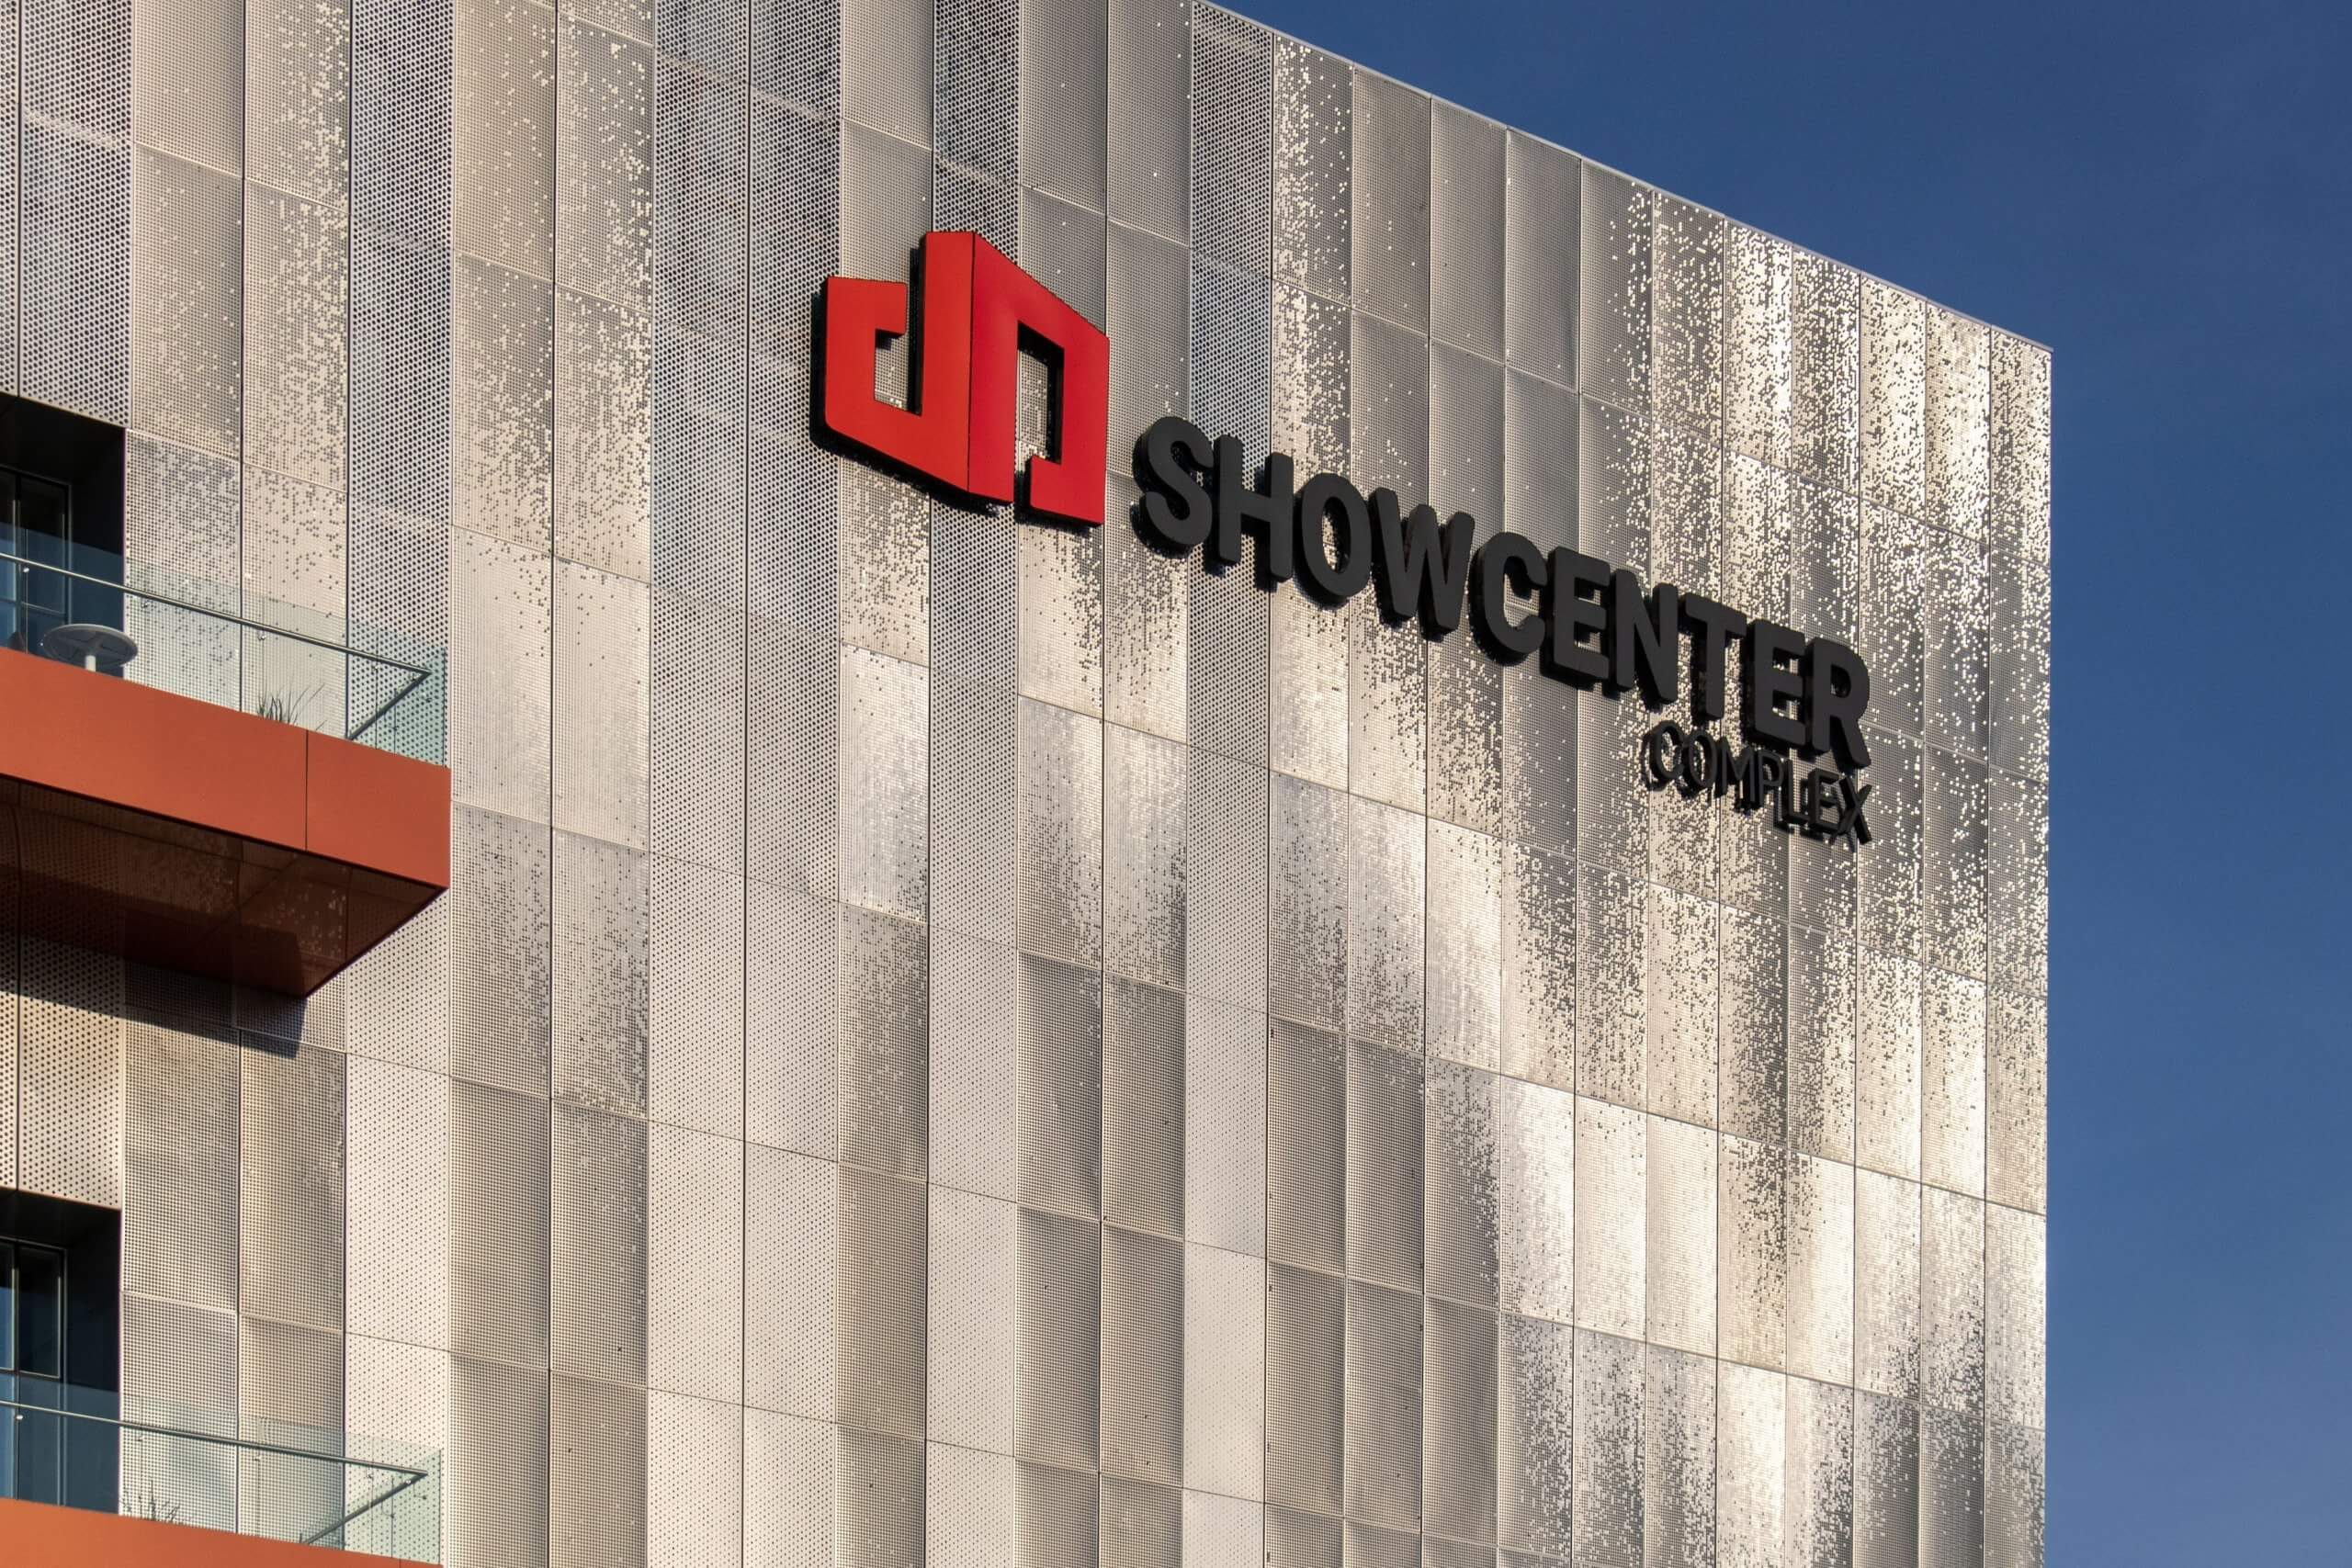 Ombrae-Showcenter_©Astyl-22